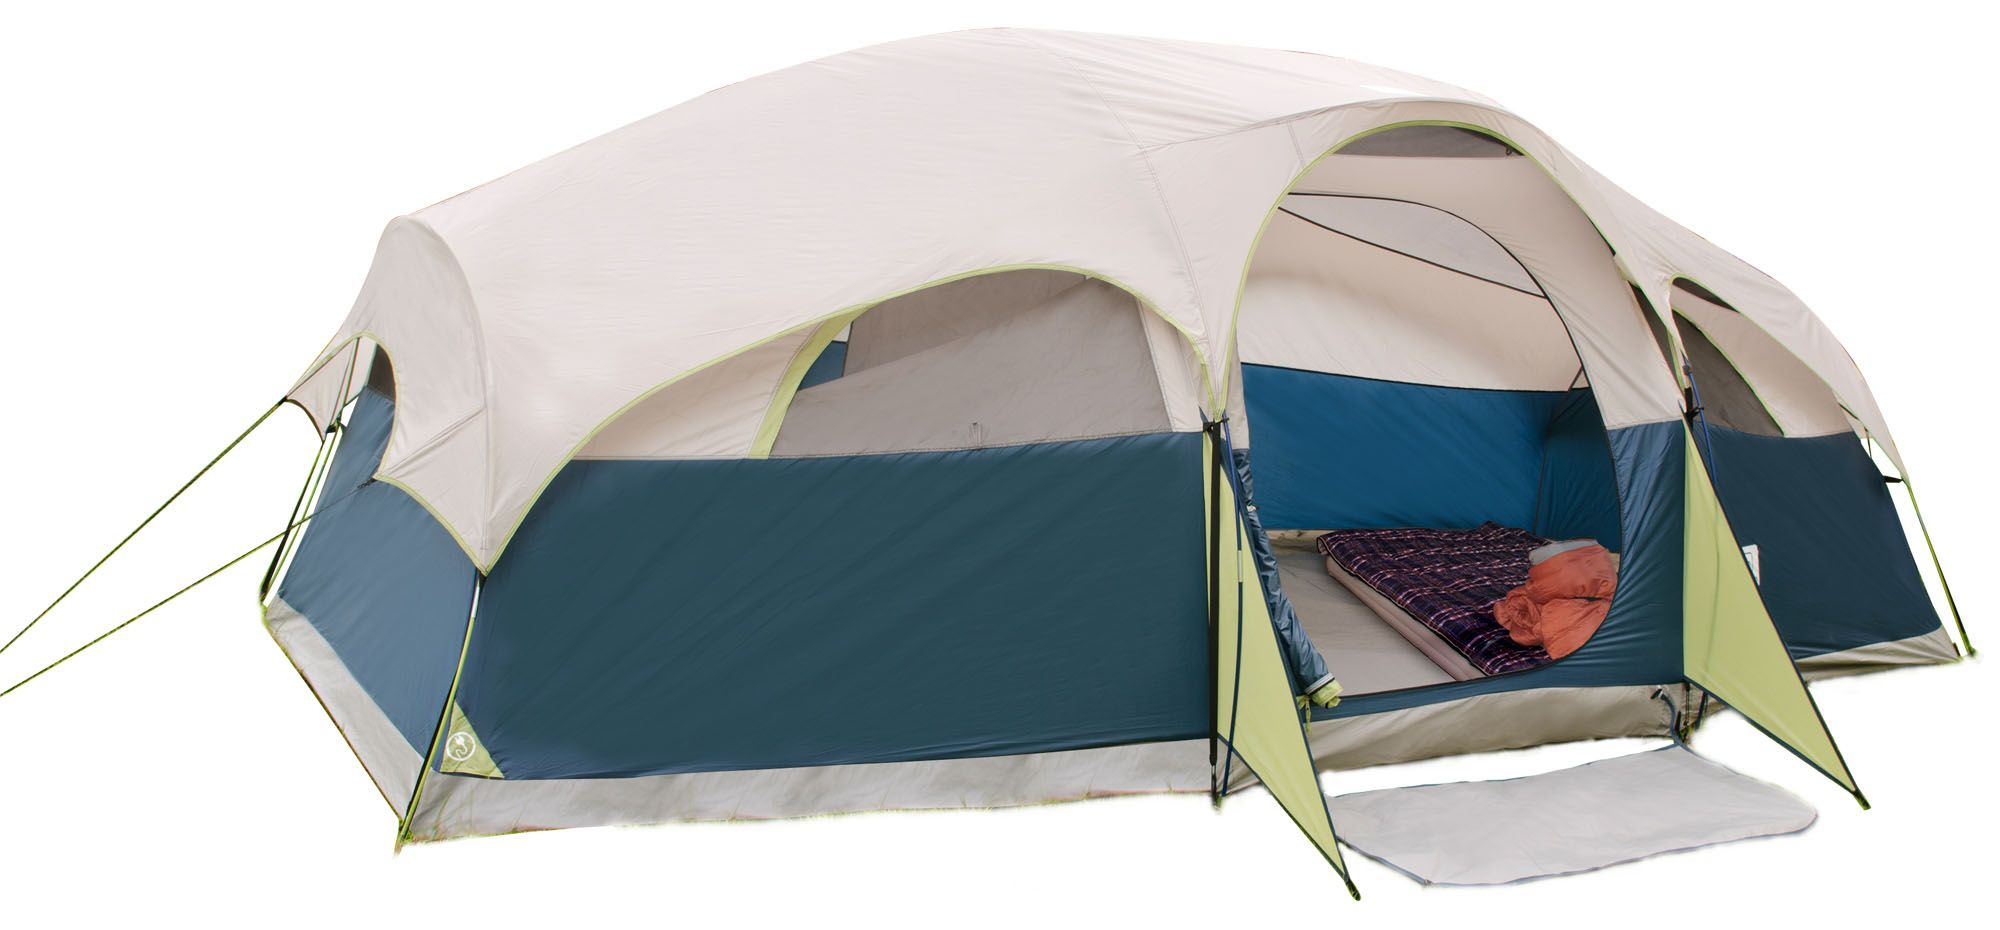 Ventura 16ft X9ft 2 Room Family Dome Tent C&ing | Walmart Canada Online Shopping  sc 1 st  Pinterest & Ventura 16ft X9ft 2 Room Family Dome Tent Camping | Walmart ...